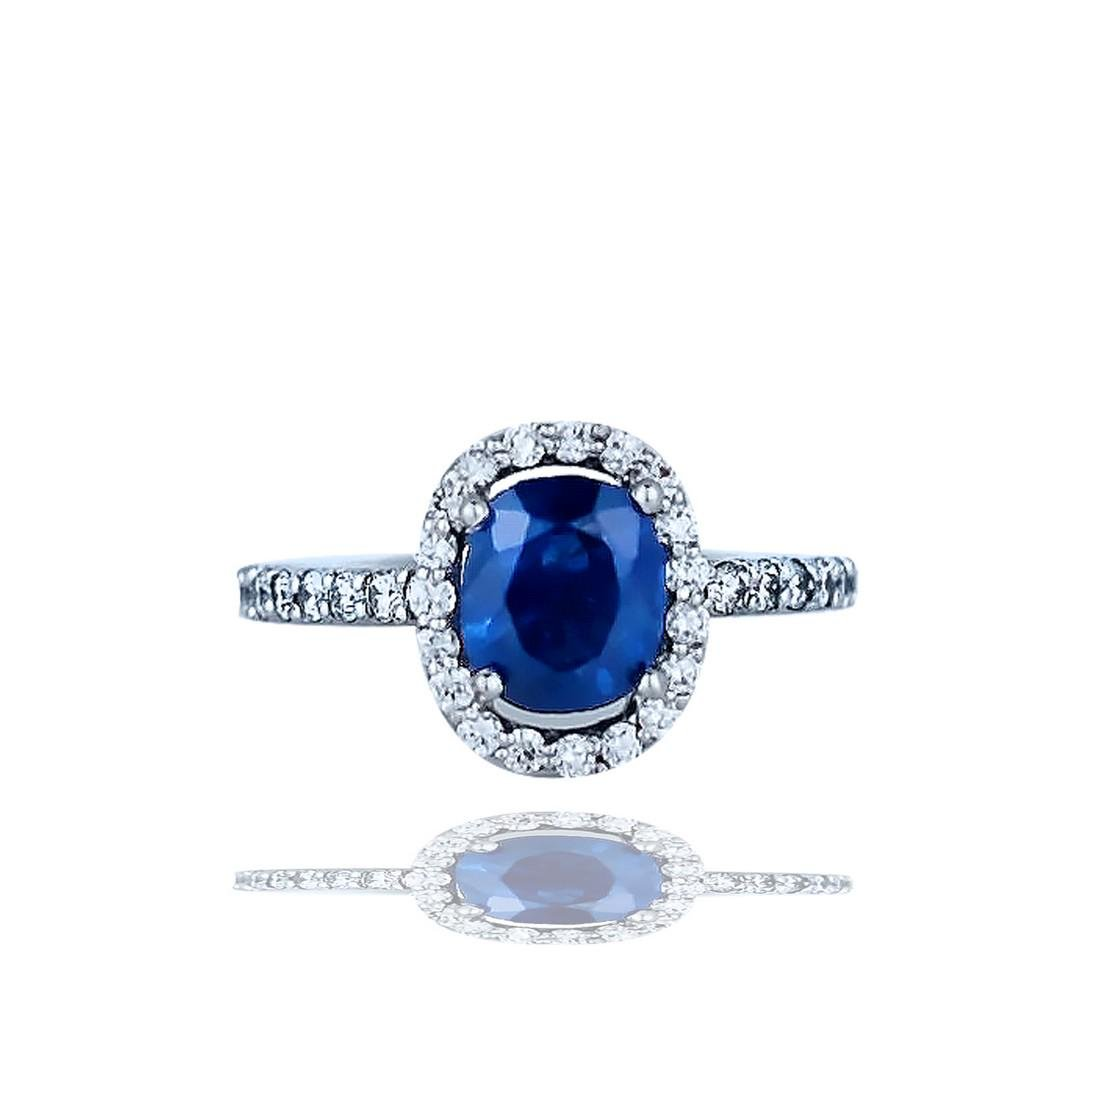 Halo, 2.85 TCW, Sapphire and Diamond Ring, Top Quality